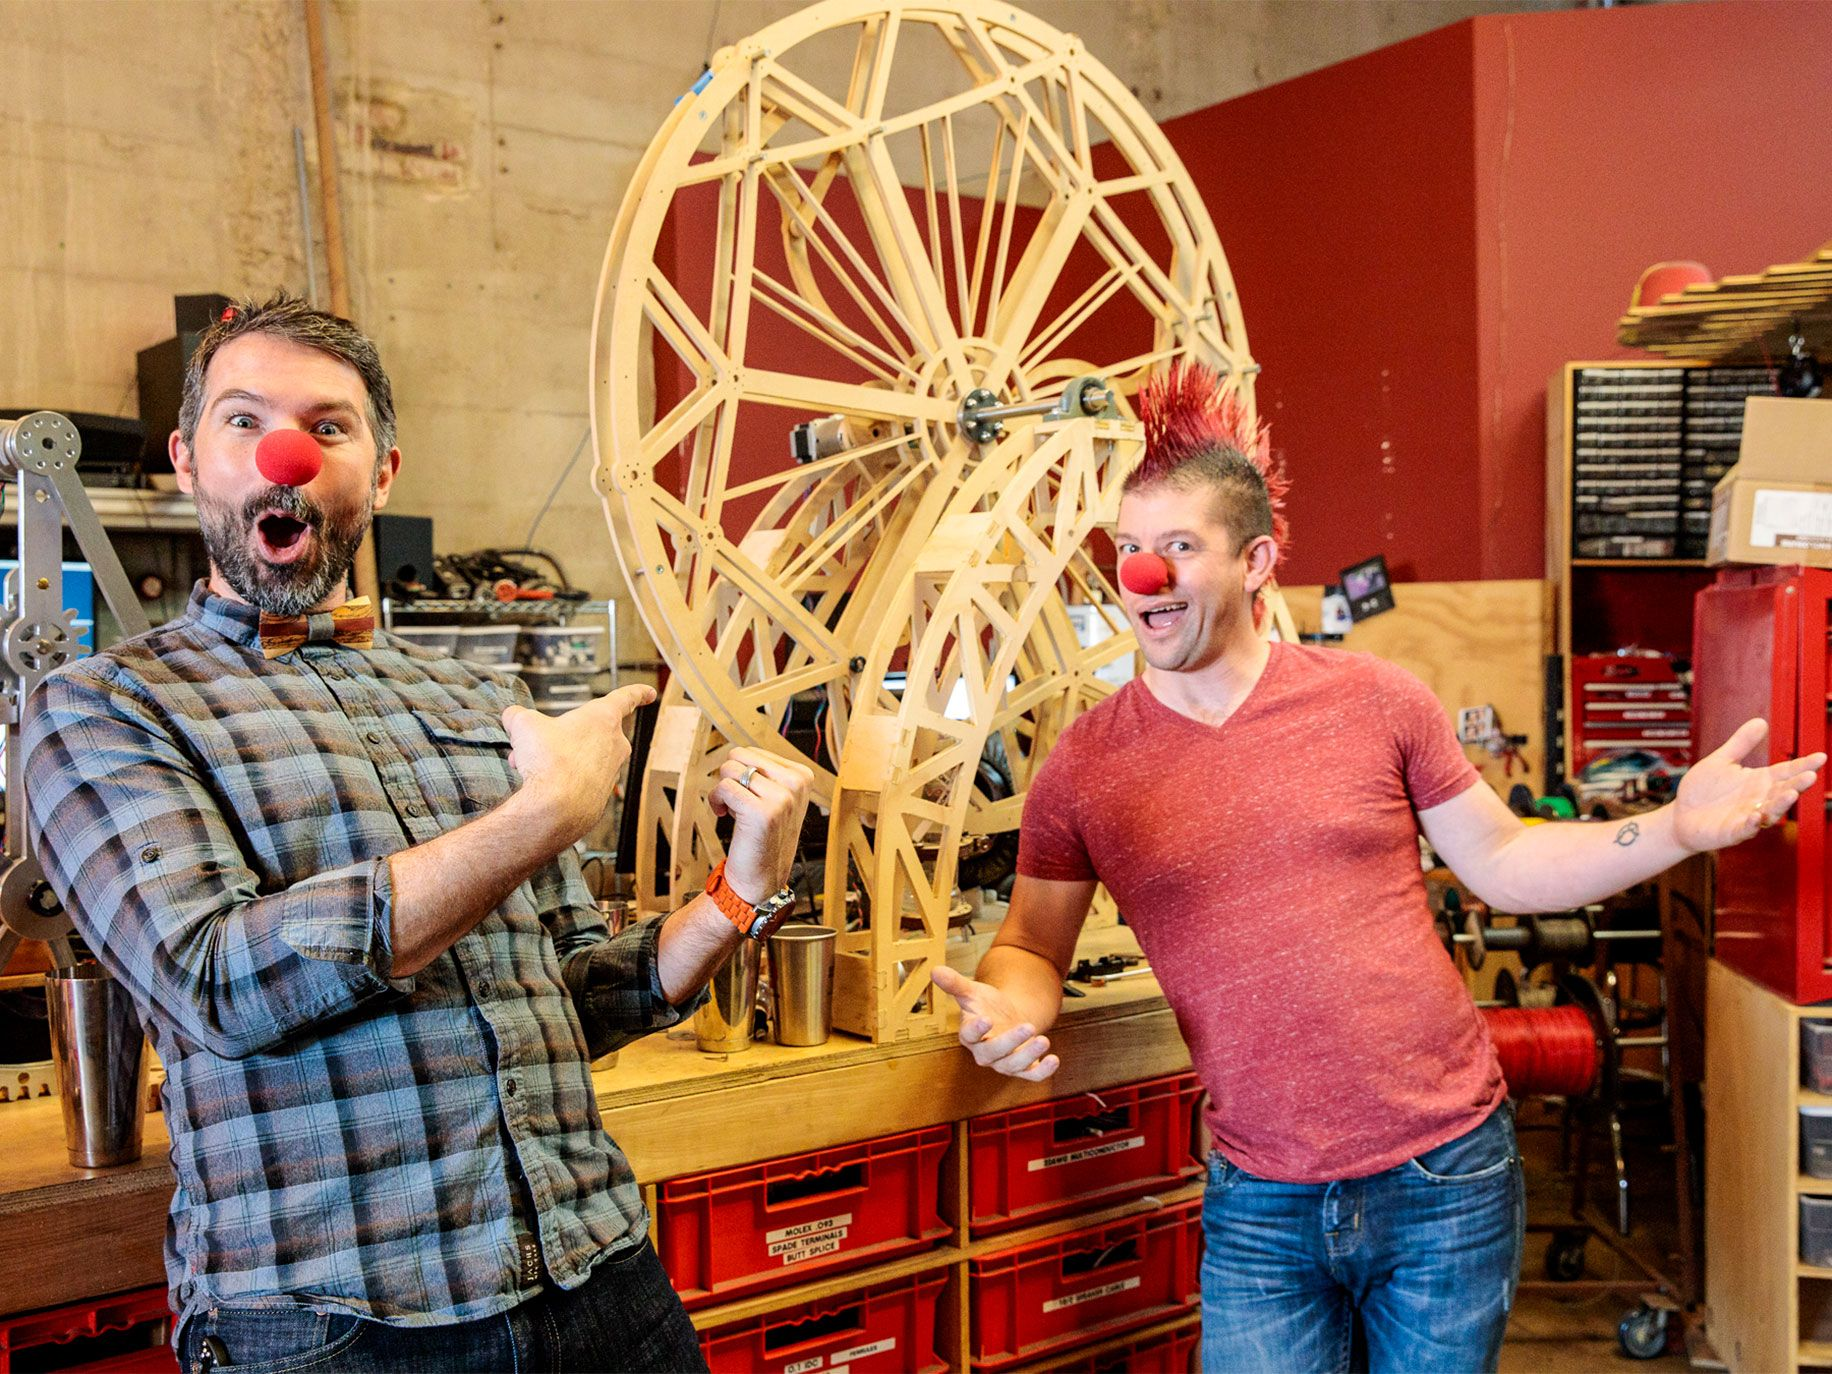 Co-founders Brent Bushnell and Eric Gradman clown around with prototypes in Two Bit Circus' company workshop in Los Angeles.